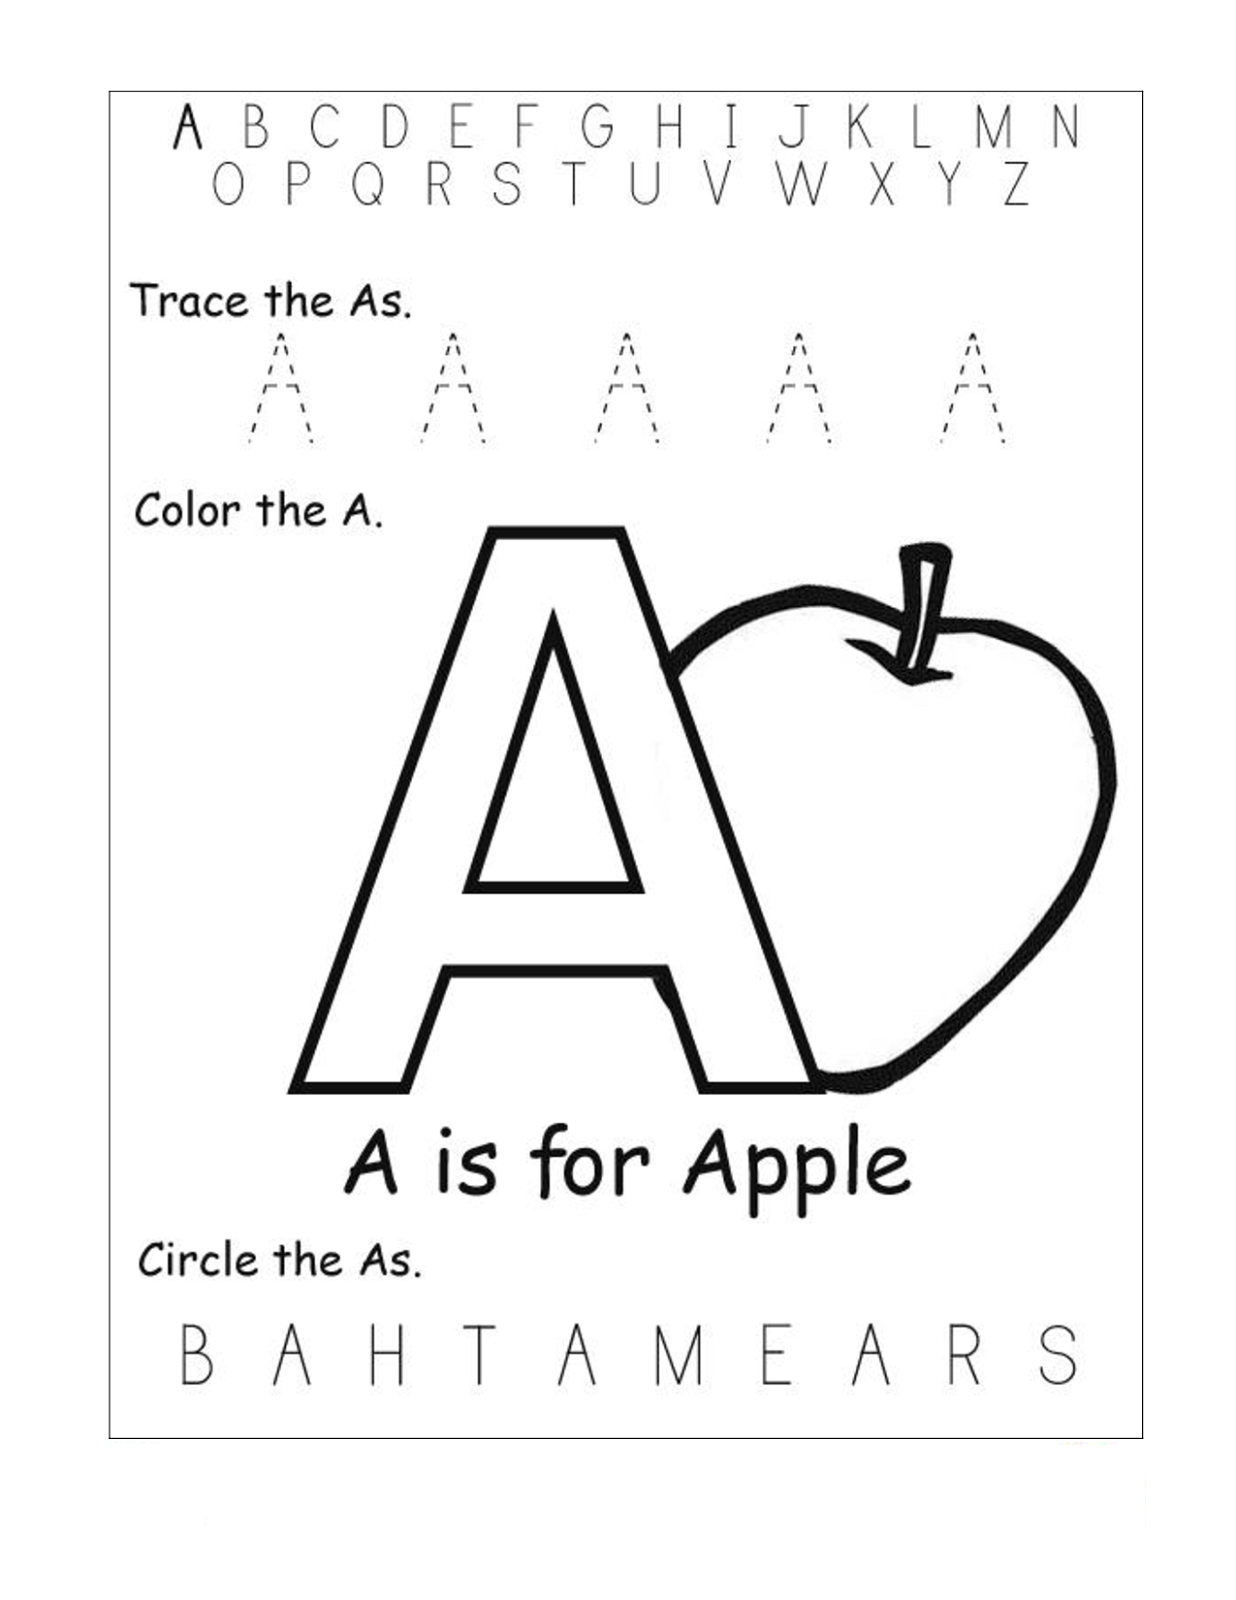 Free Abc Worksheets For Pre K | Activity Shelter with regard to Pre K Alphabet Worksheets Free